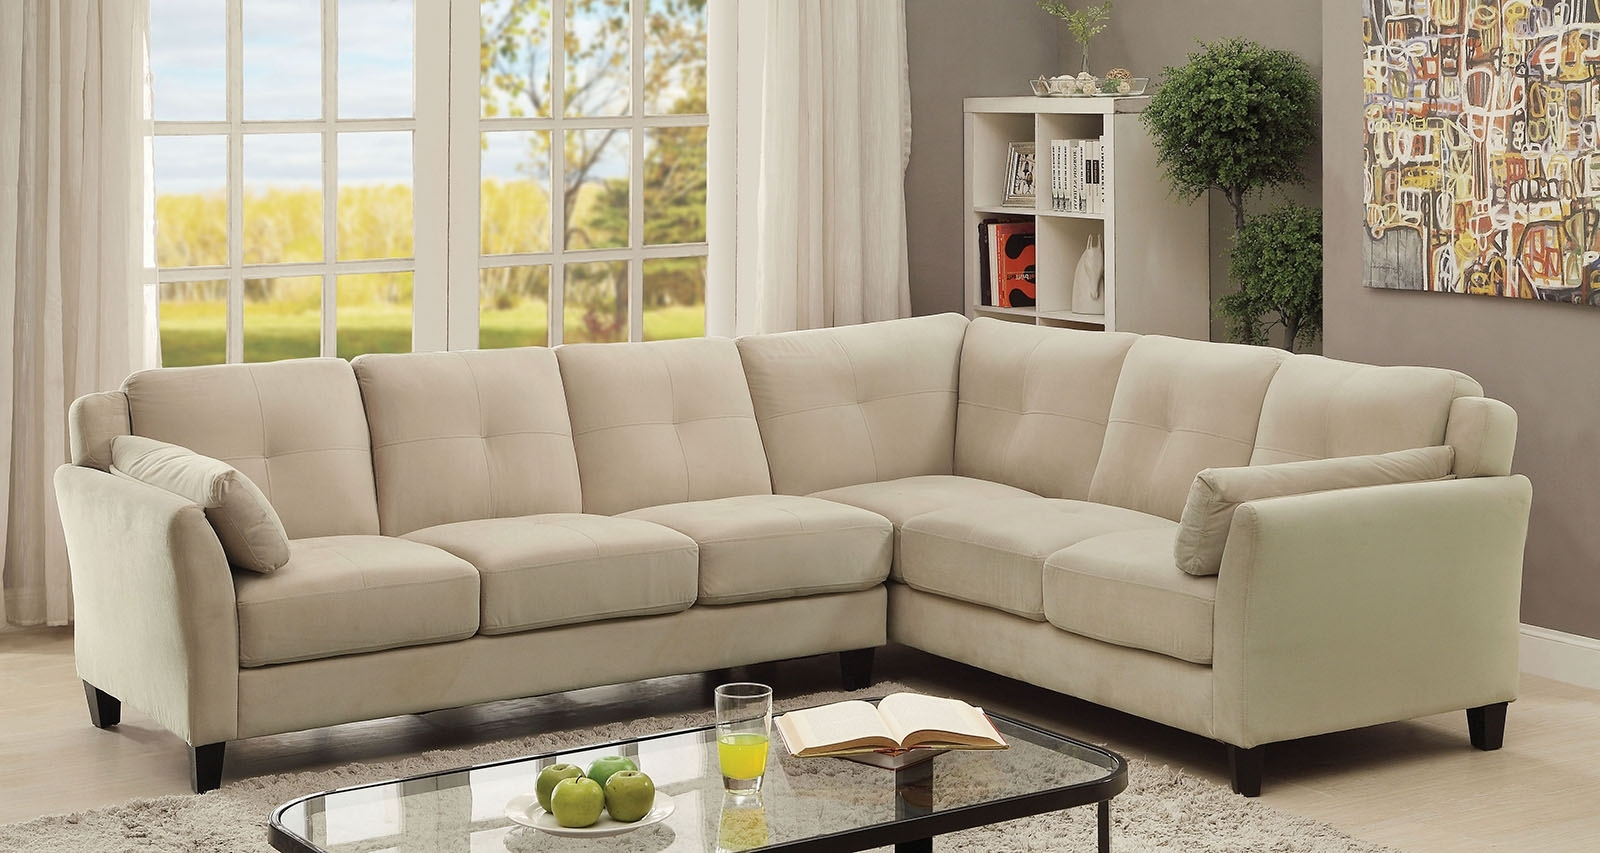 Nh Sectional Sofas With Regard To Famous Peever Ii Beige Sectional (View 13 of 20)